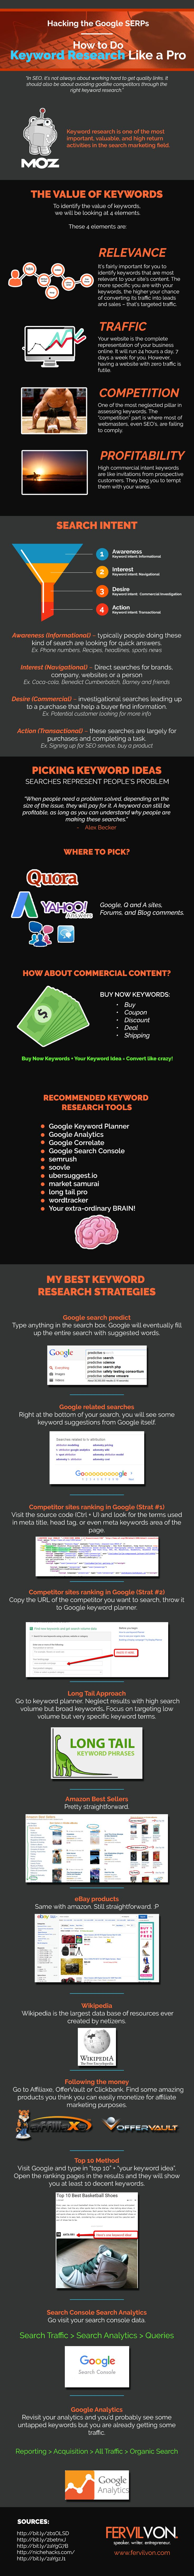 Amazing keyword research strategies.